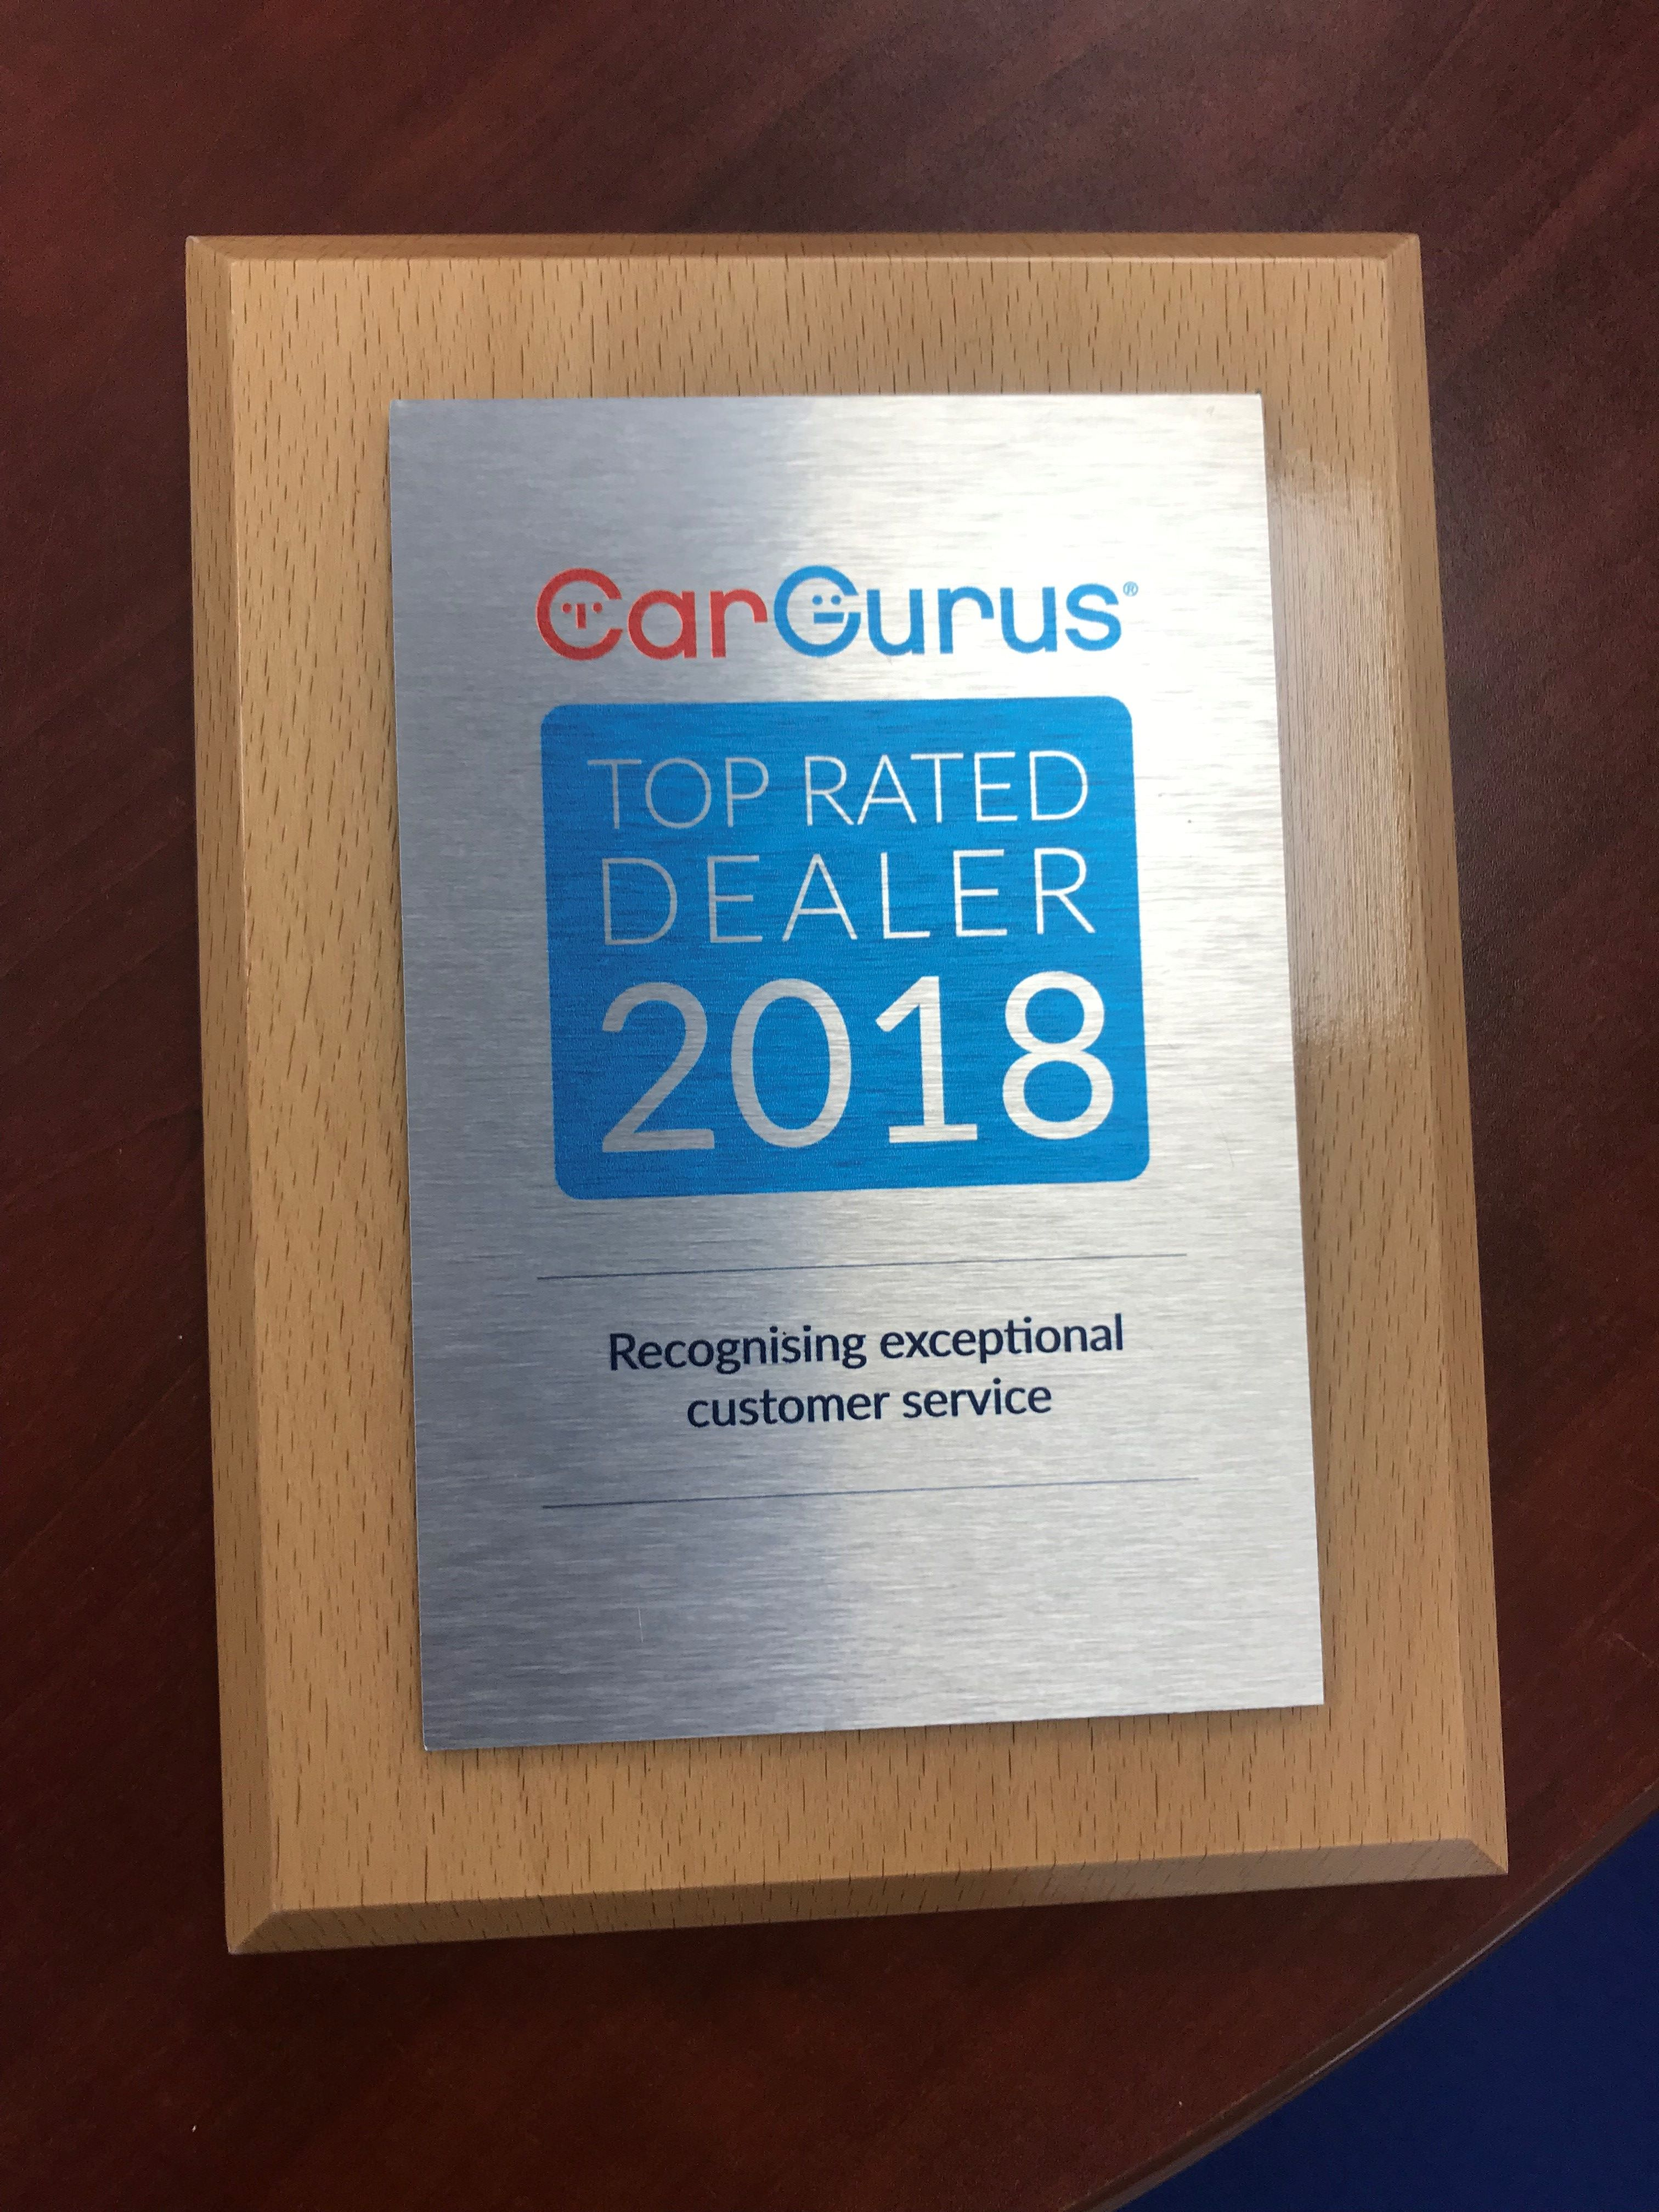 Car Gurus Dealer >> Frasers Is A Cargurus 2018 Top Rated Dealer Frasers Cars Falkirk